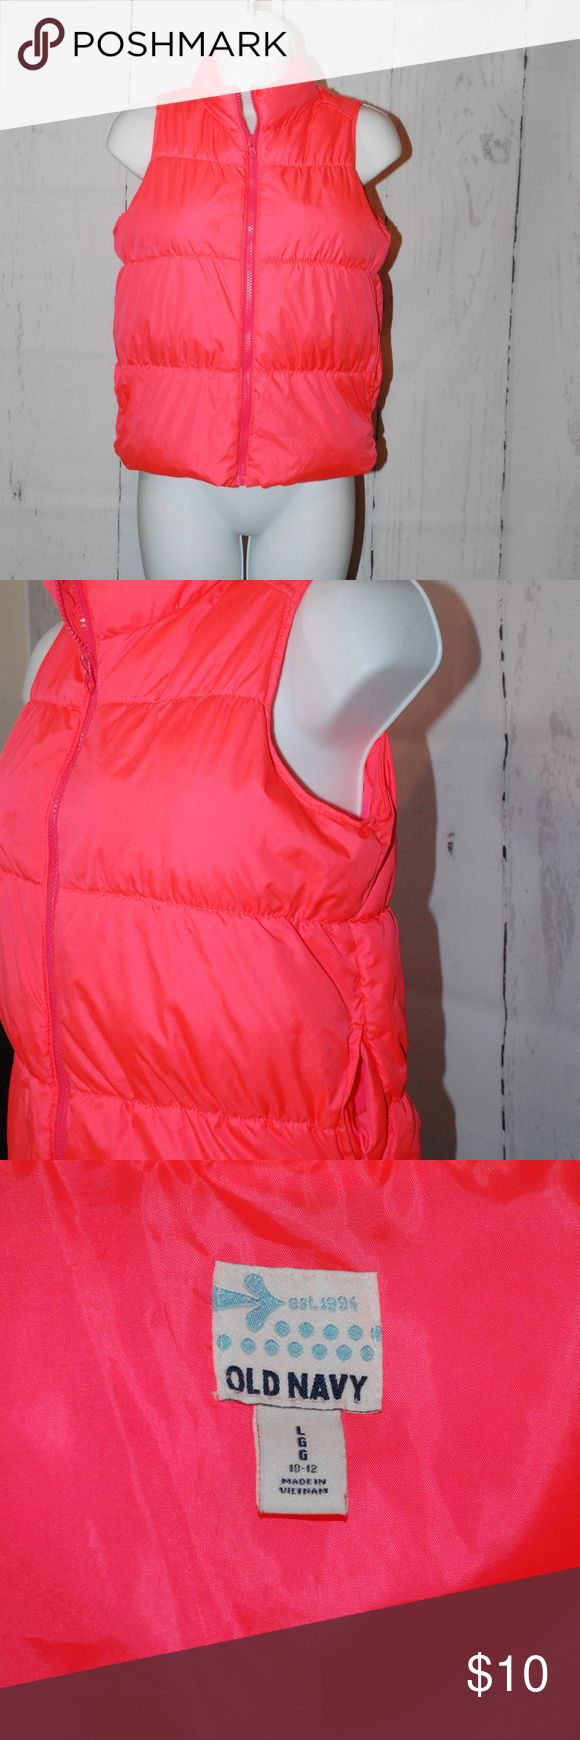 Old Navy girls puffer vest size 10-12 bright neon Old Navy girls puffer vest size 10-12 bright neon Adorable puffer vest bright bold color smoke free home excellent clean conditon zip up front Old Navy Jackets & Coats Puffers